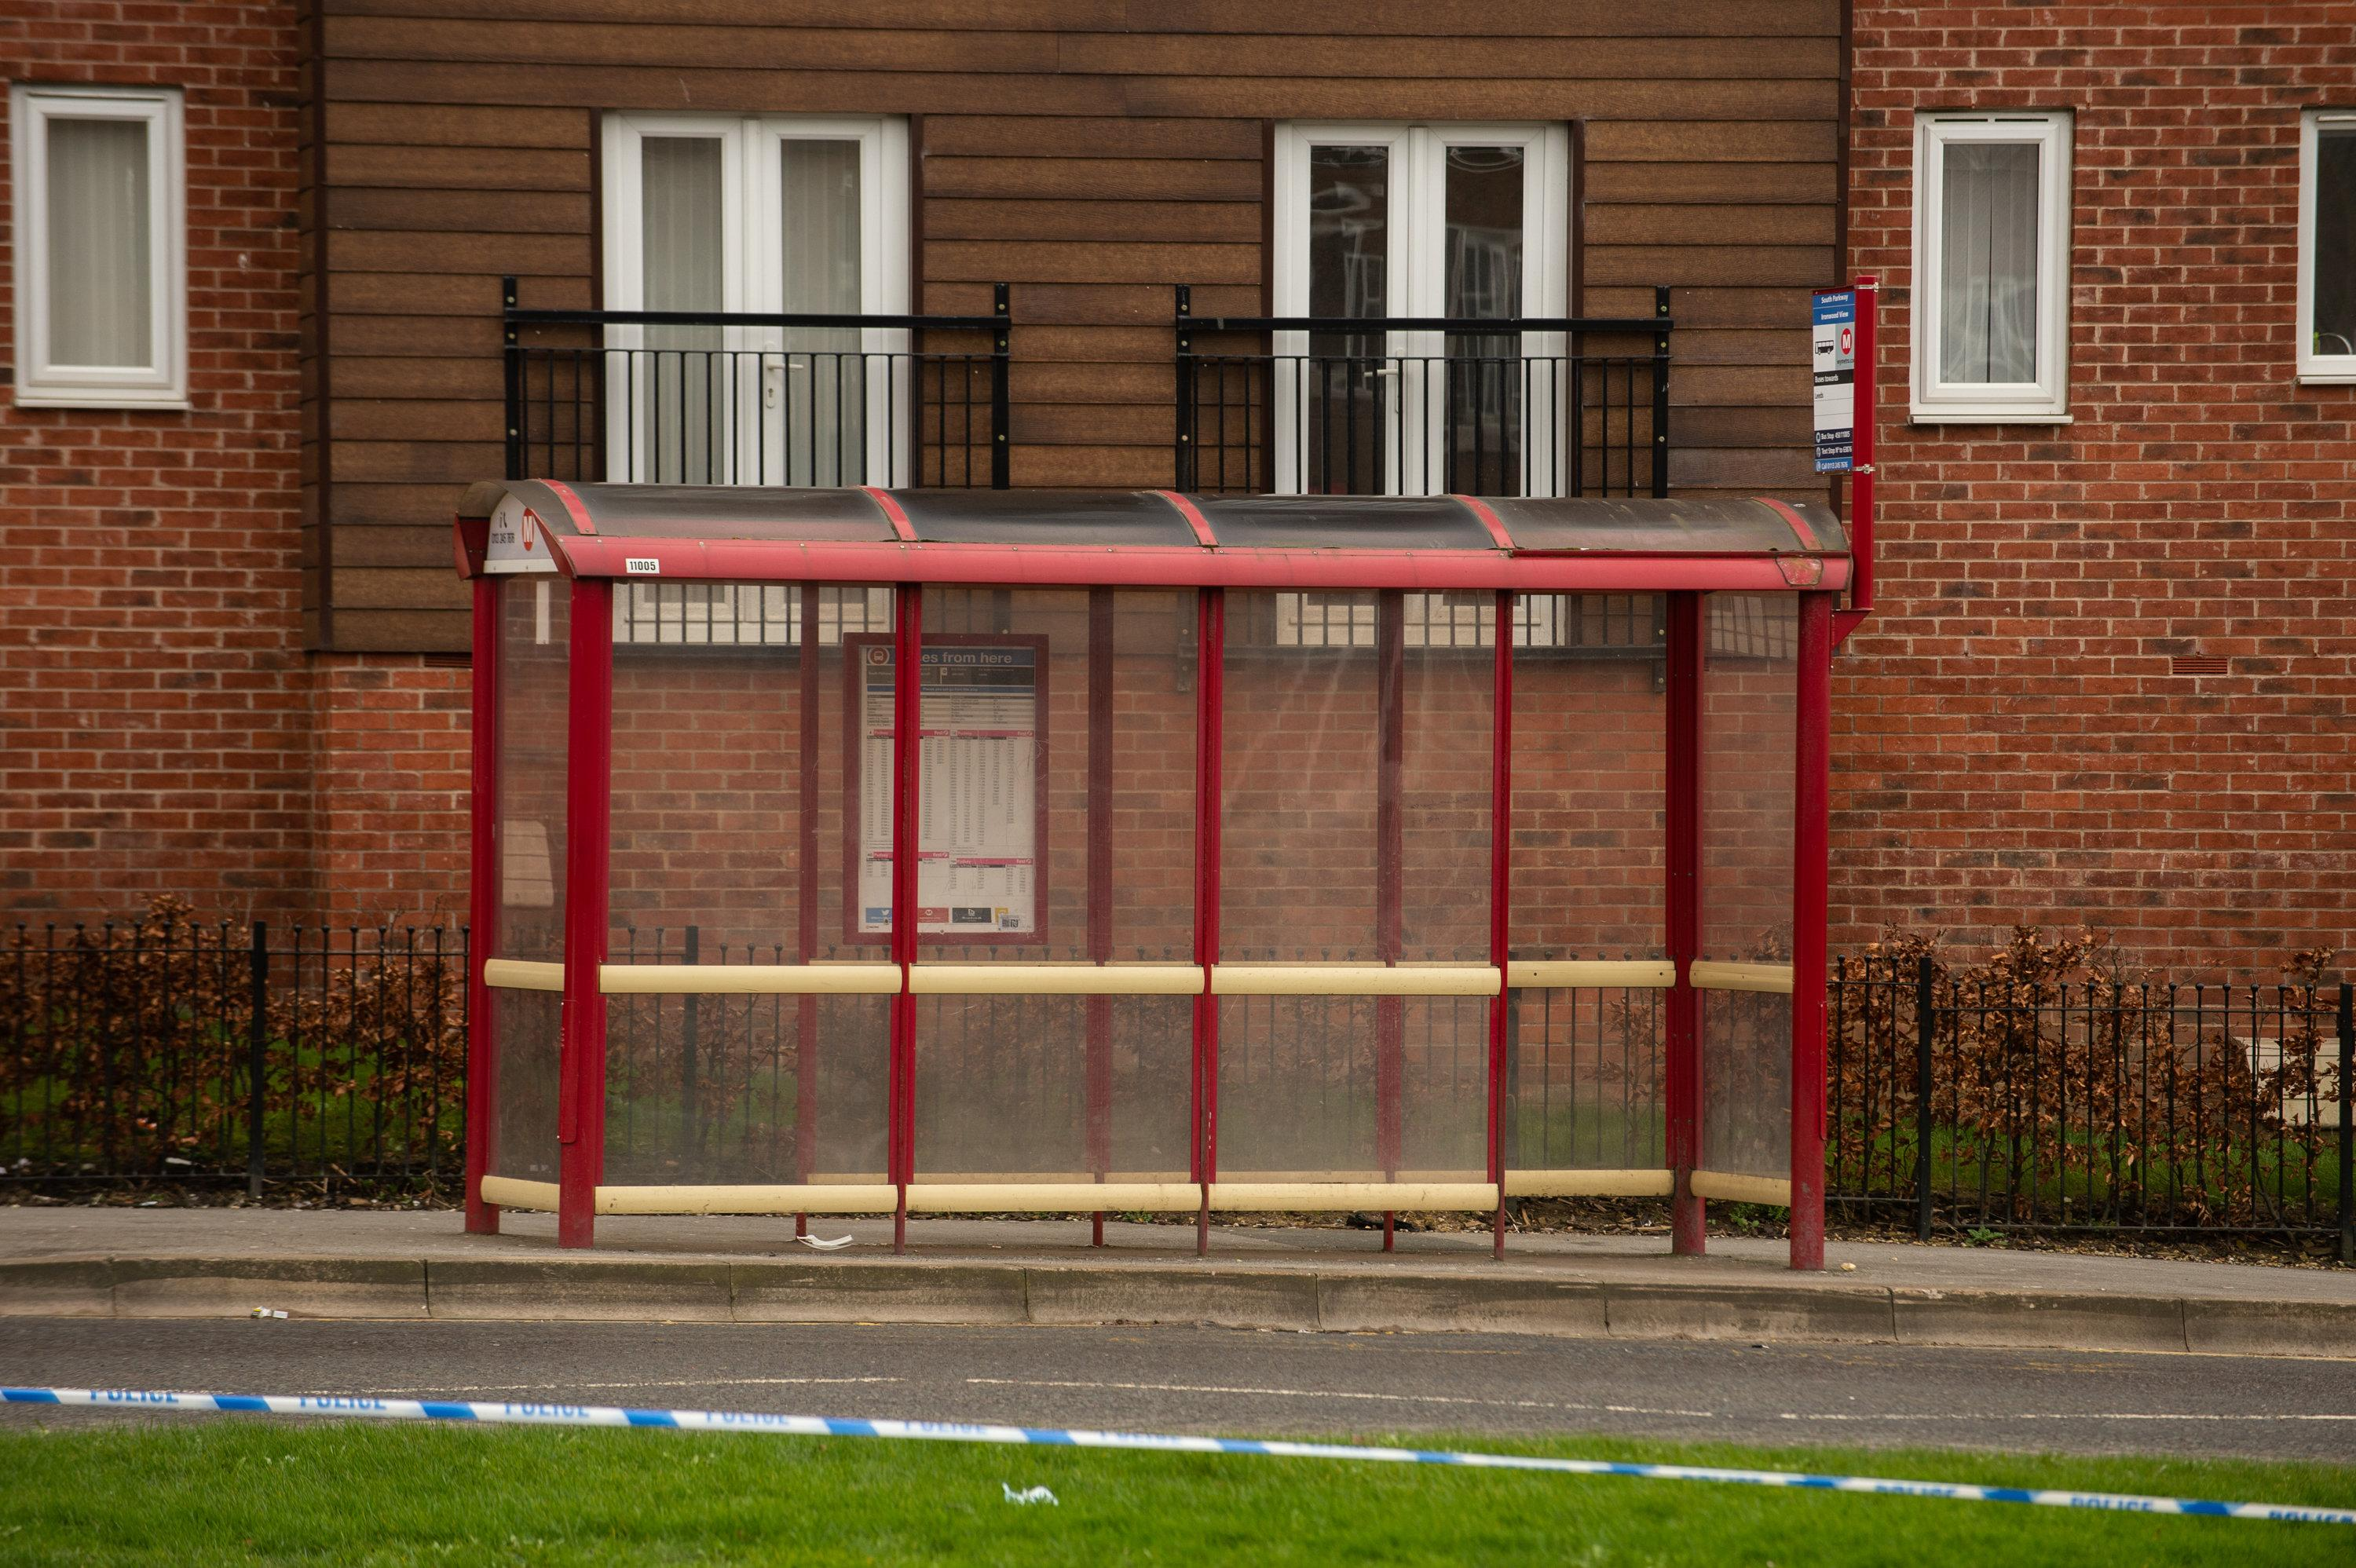 Woman, 19, dies after being found unconscious at bus stop in Leeds